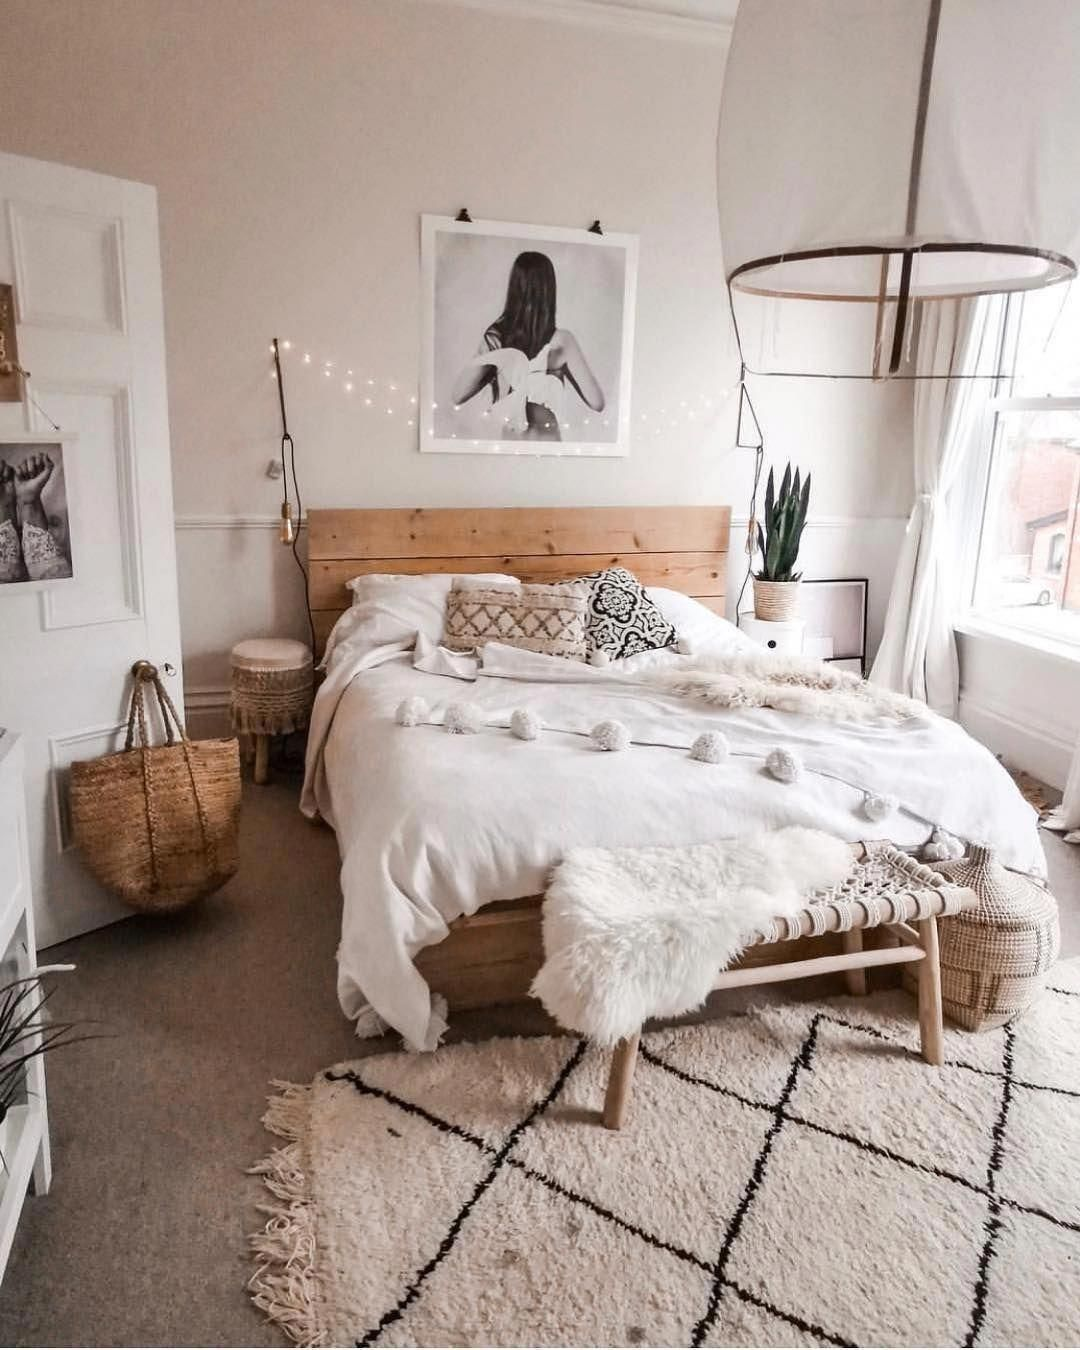 Boys Bed Room Neutral Bed Room Simple Master Suite Designs Master Bedroom Decoration Ma In 2020 Bedroom Inspiration Boho Simple Bedroom Minimalist Bedroom Design